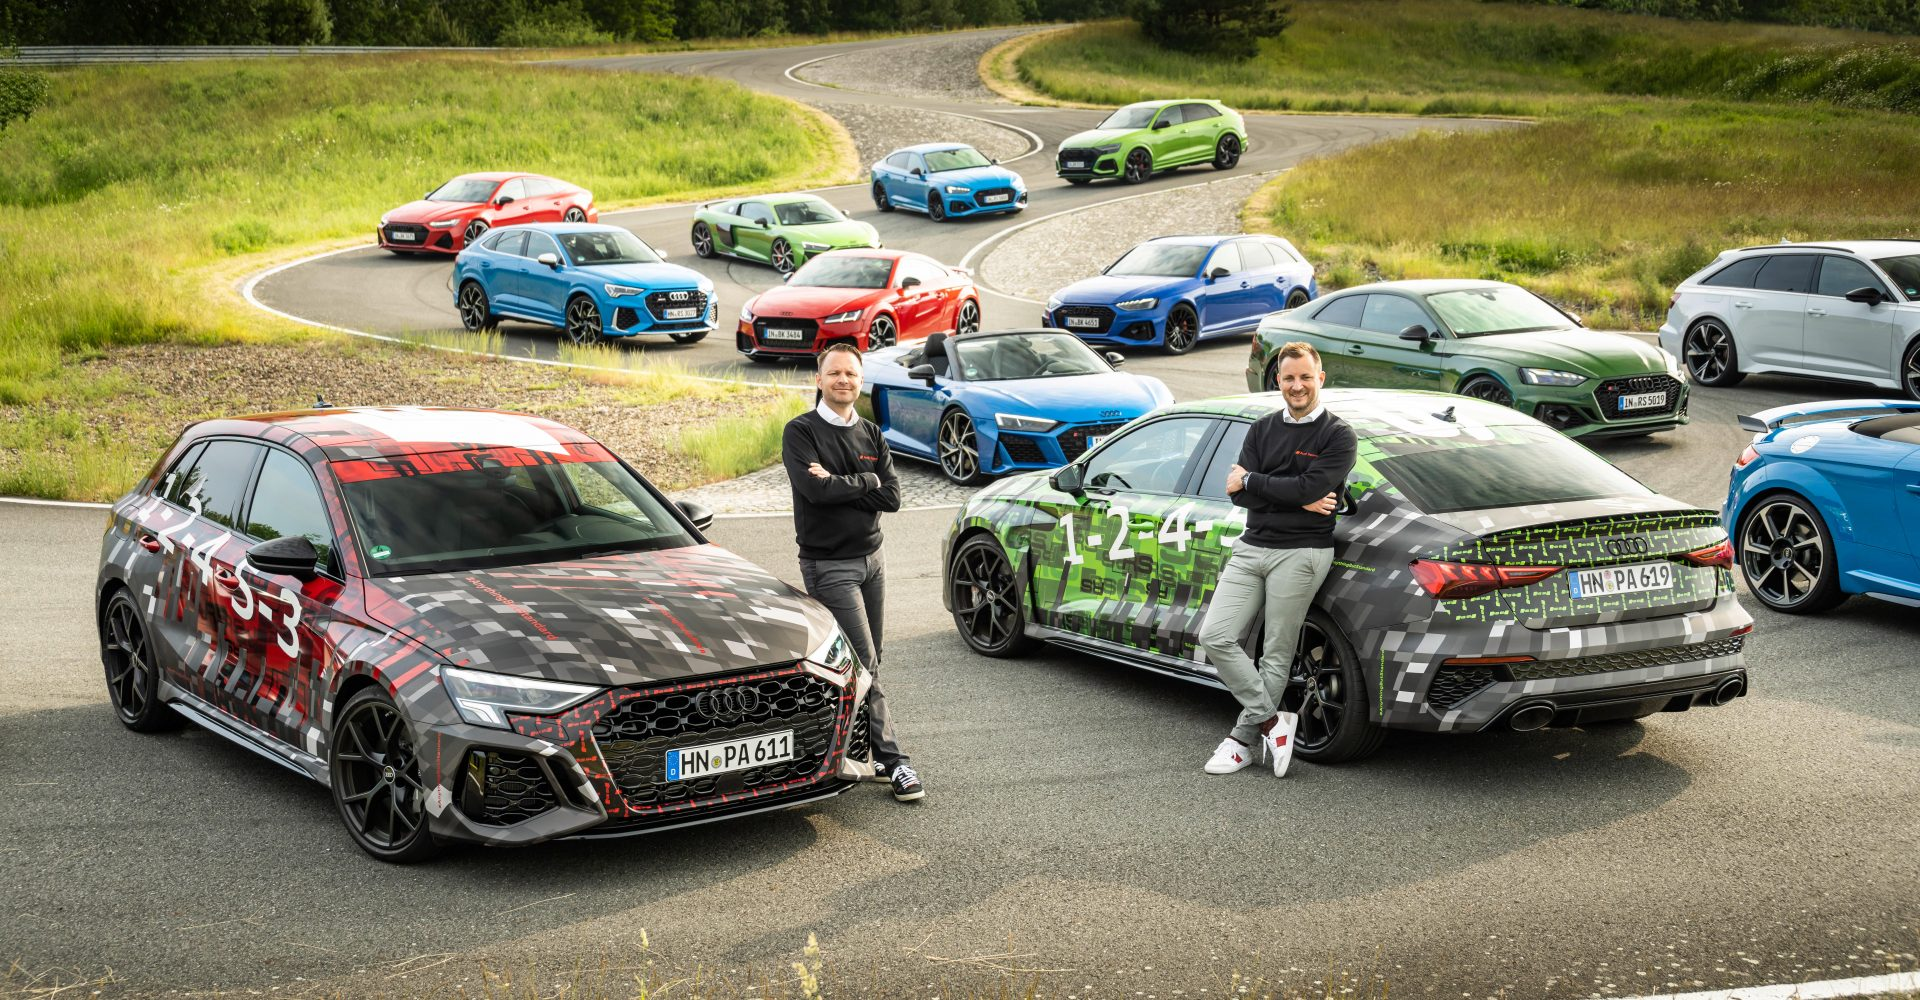 Audi's RS performance division had a record year in 2020